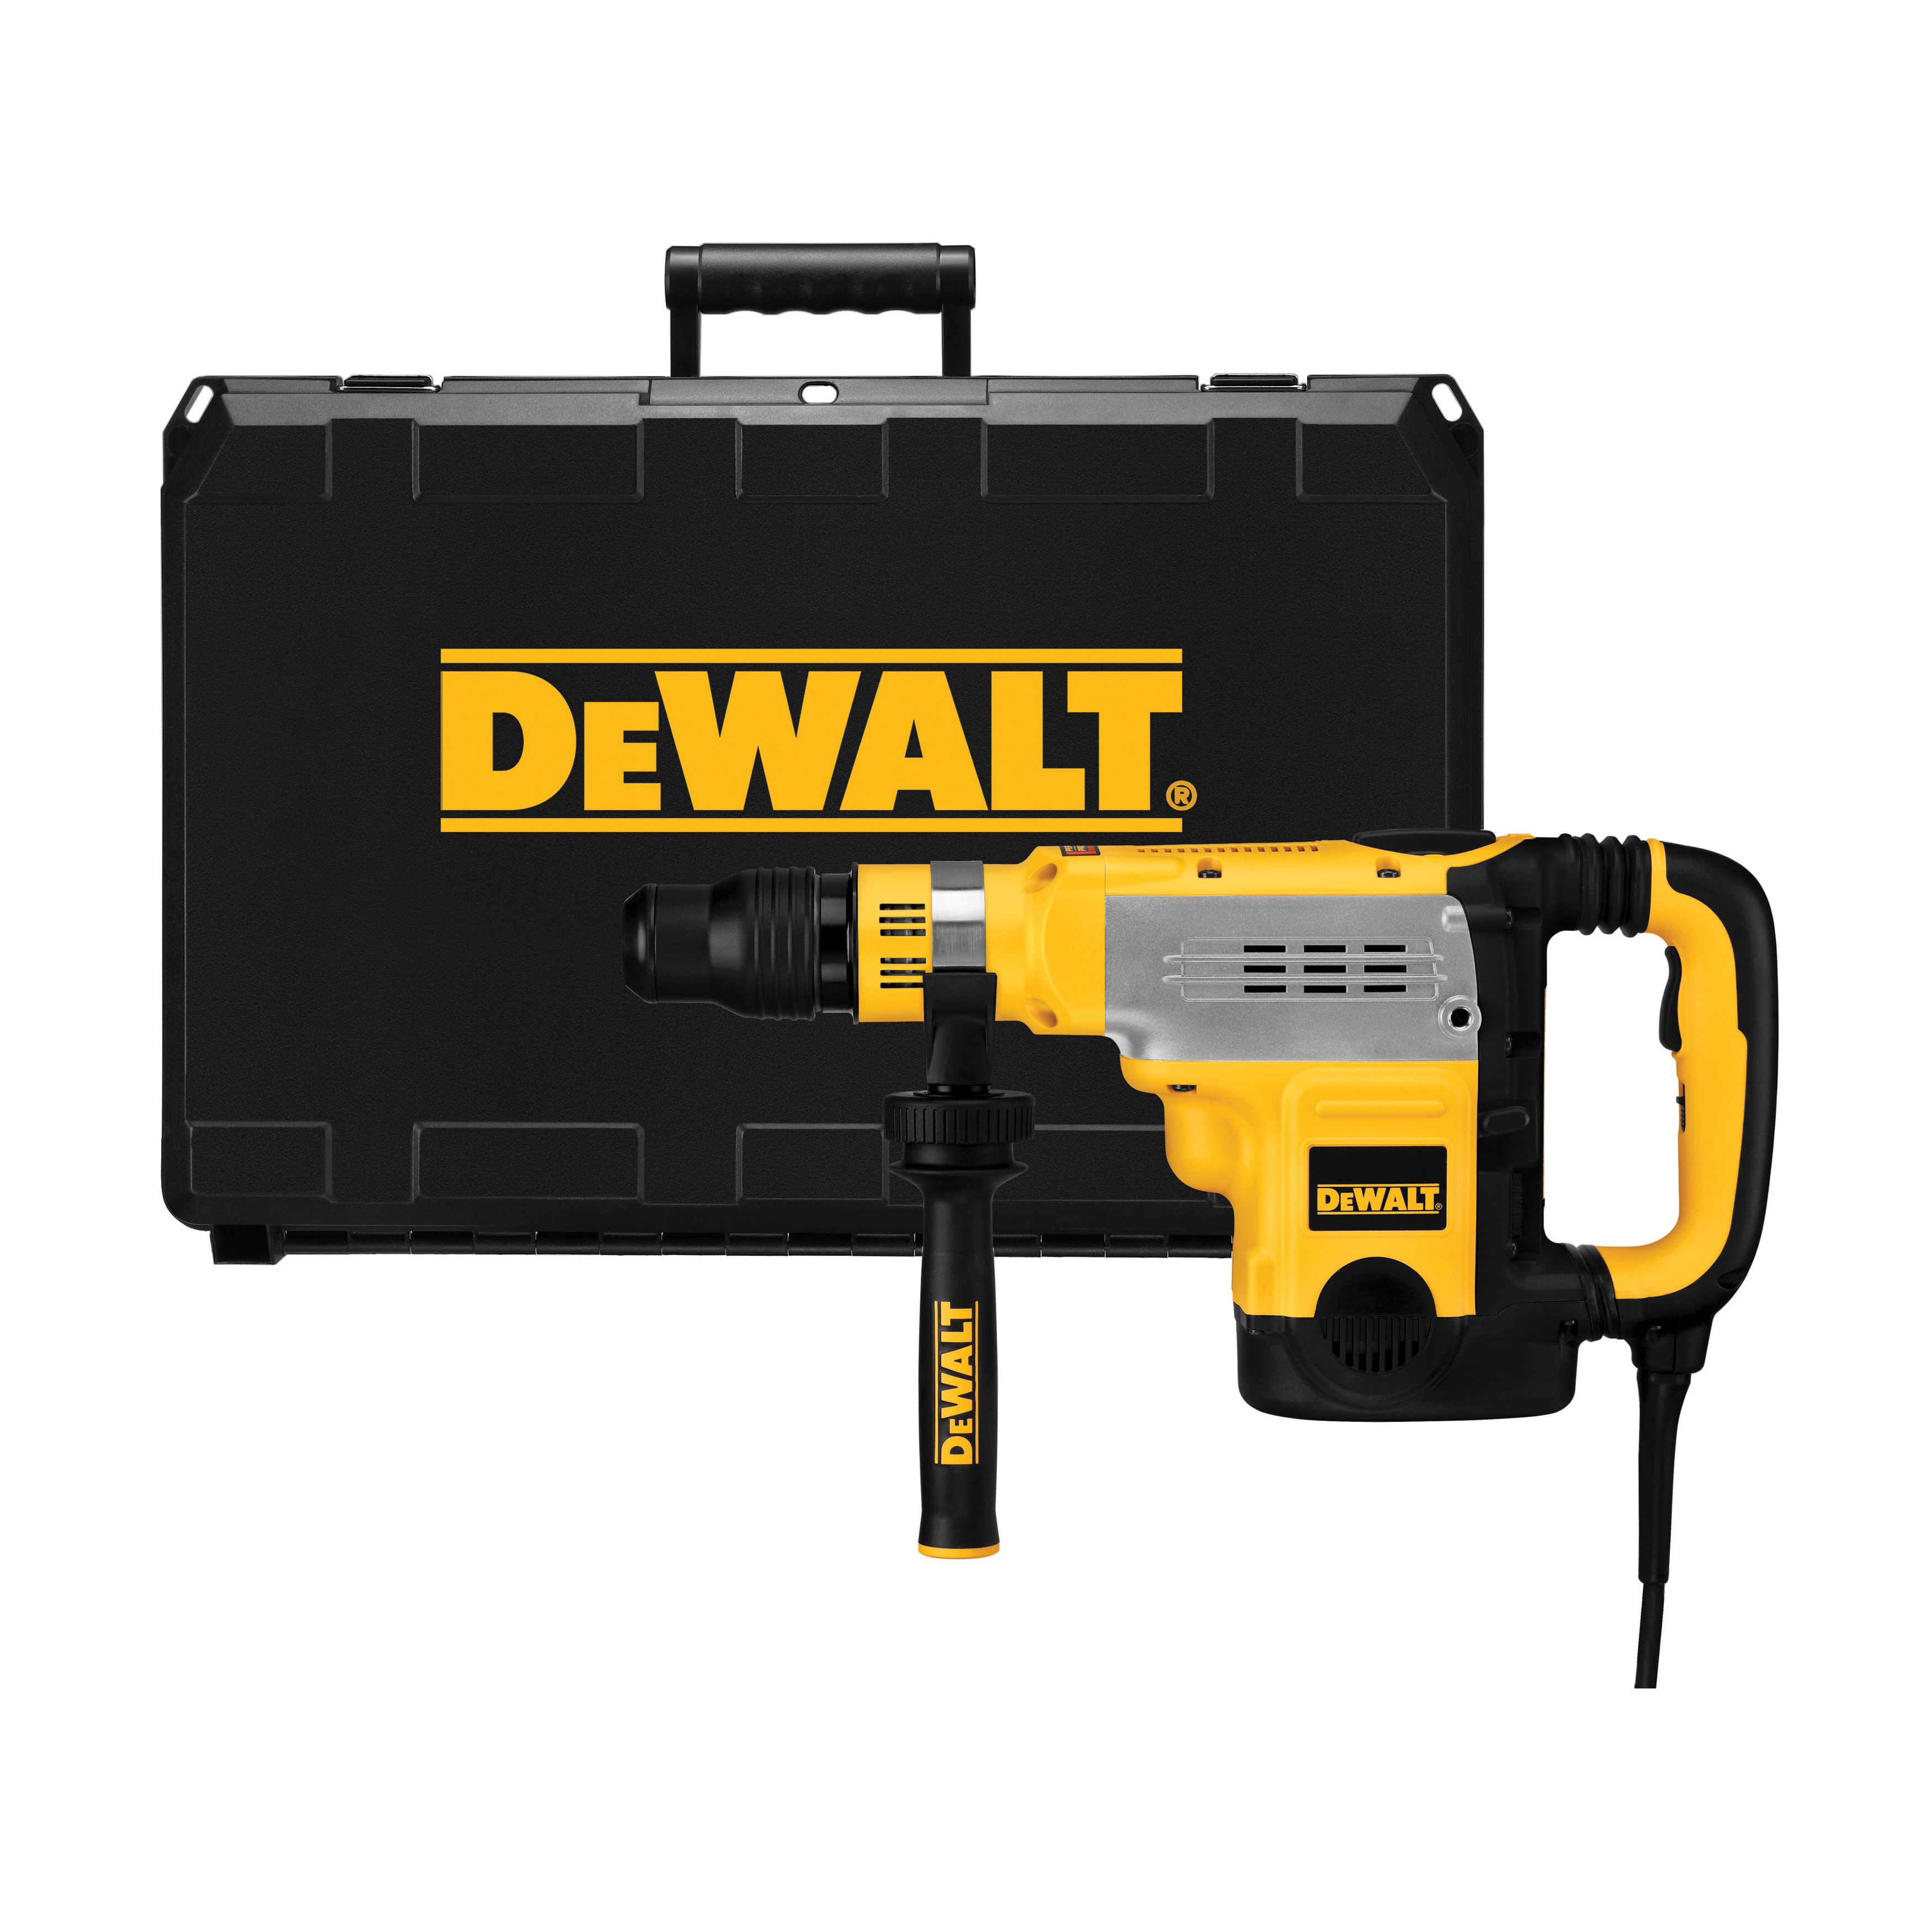 DeWALT® D25723K Combination Rotary Hammer Kit, 1 in SDS Max® Chuck, 1260 to 2520 bpm, 137 to 275 rpm No-Load, 6 in Max Core Bit Compatibility, 1-7/8 in Max Solid Bit Capacity, 20-1/2 in OAL